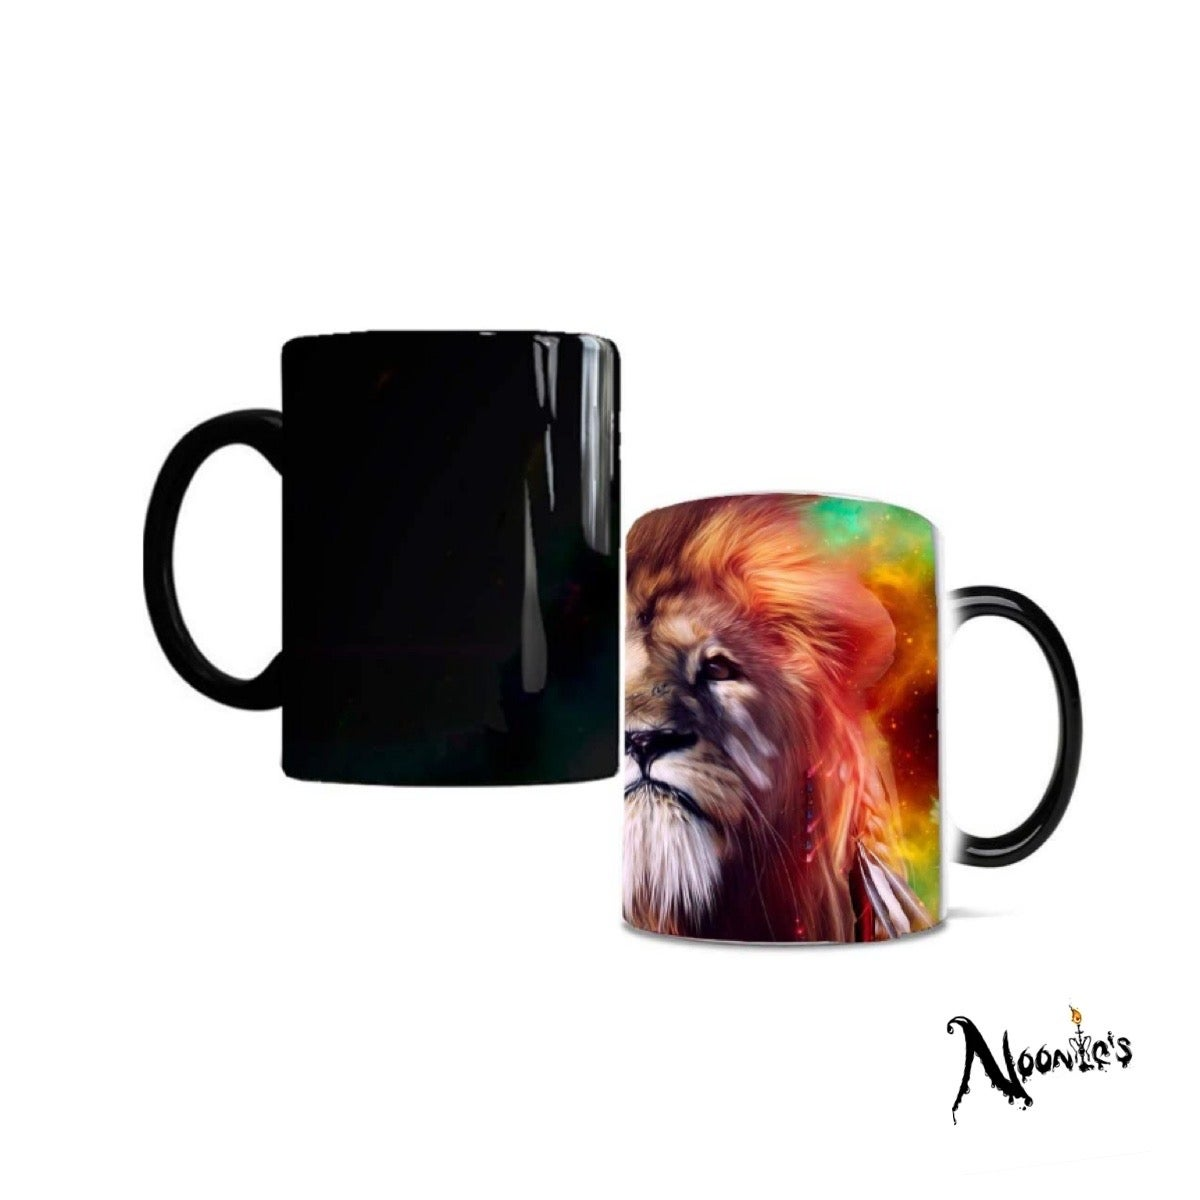 Image of Hot lion drinking mug